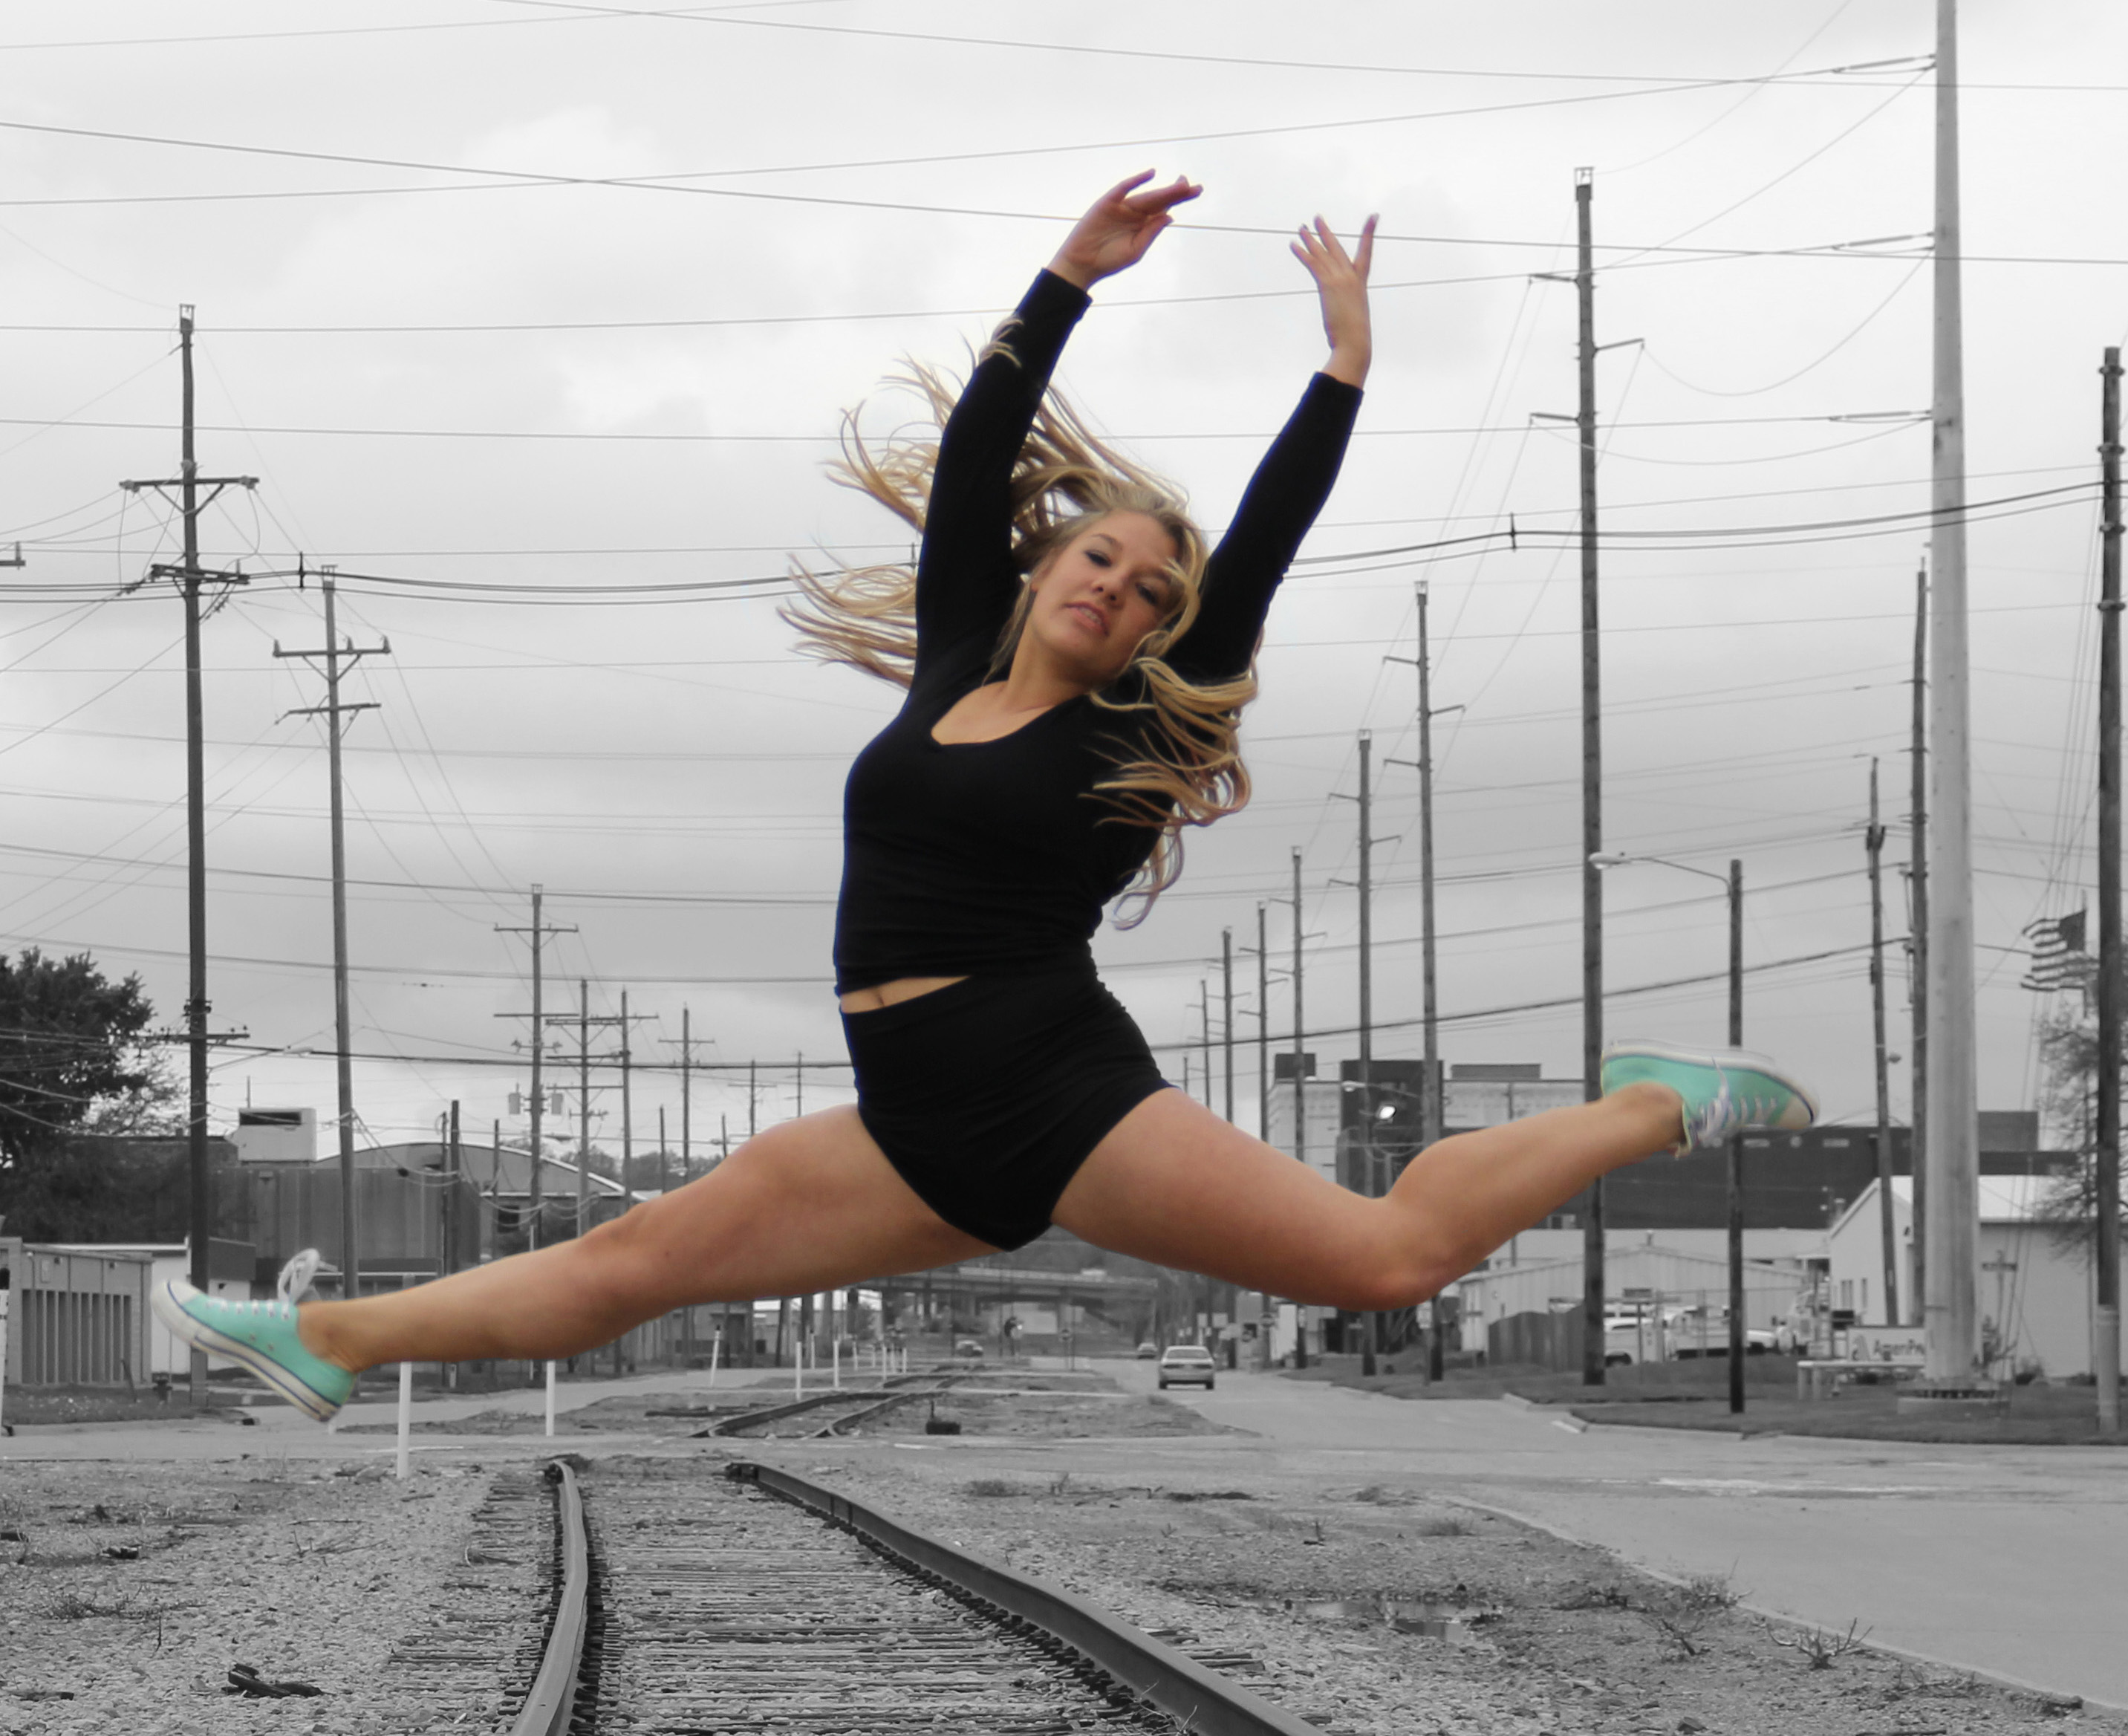 Dancer from the Dance Factory dance studio in Topeka, Kansas jumping over railroad tracks - GALLERIES